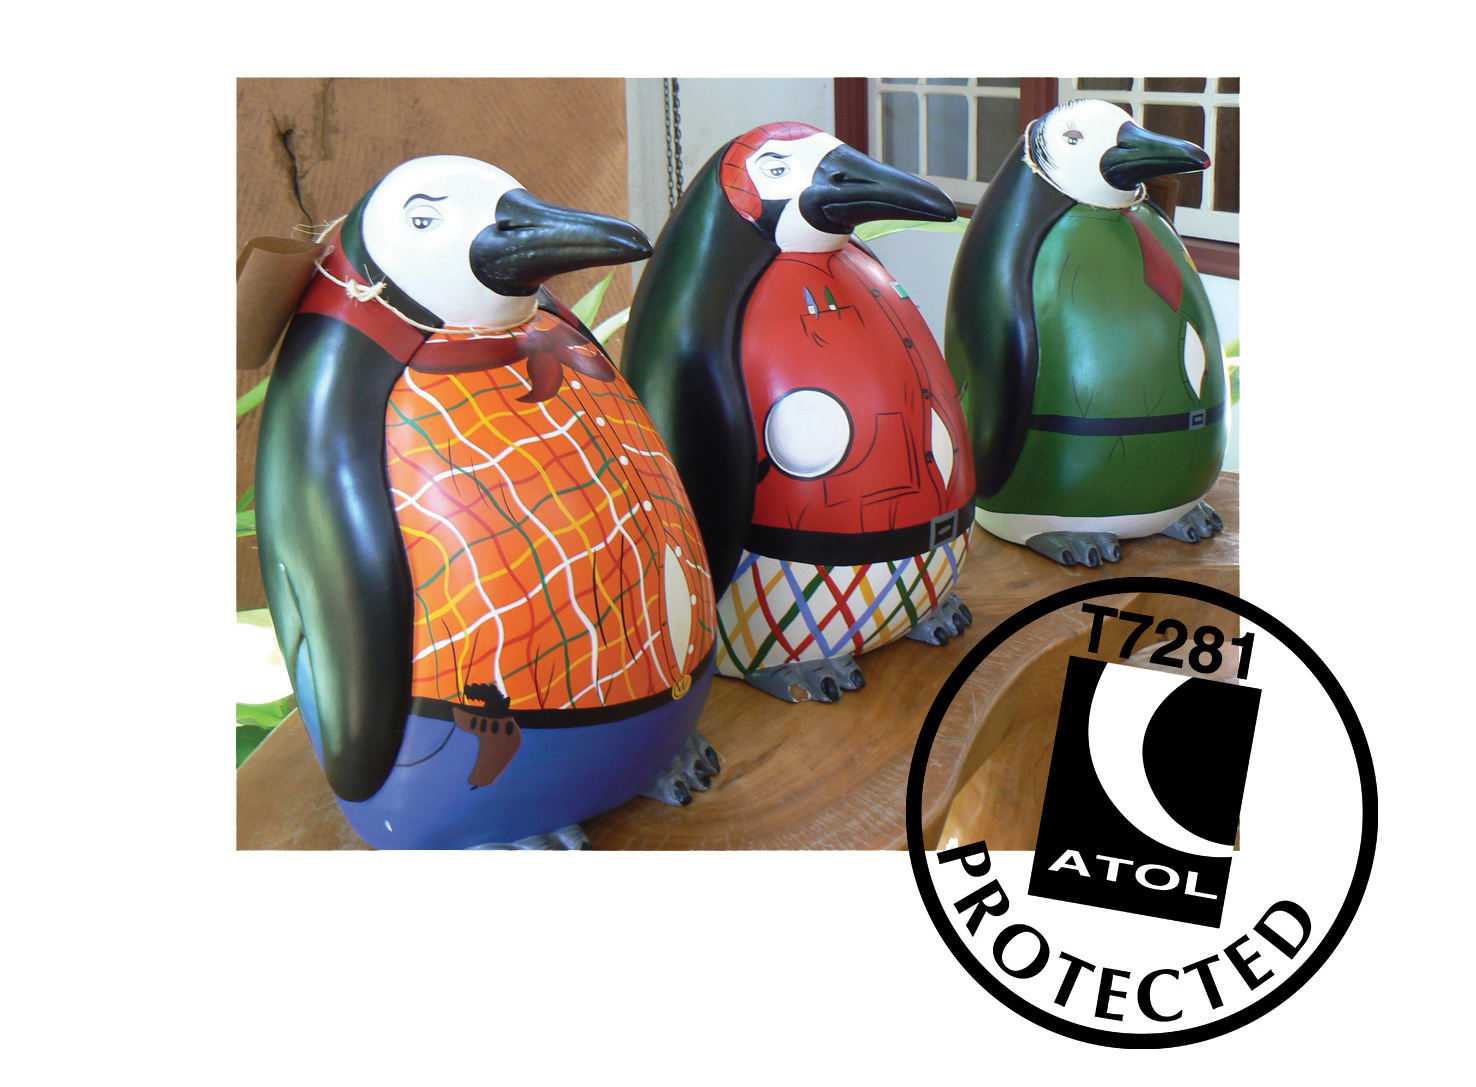 ATOL protection